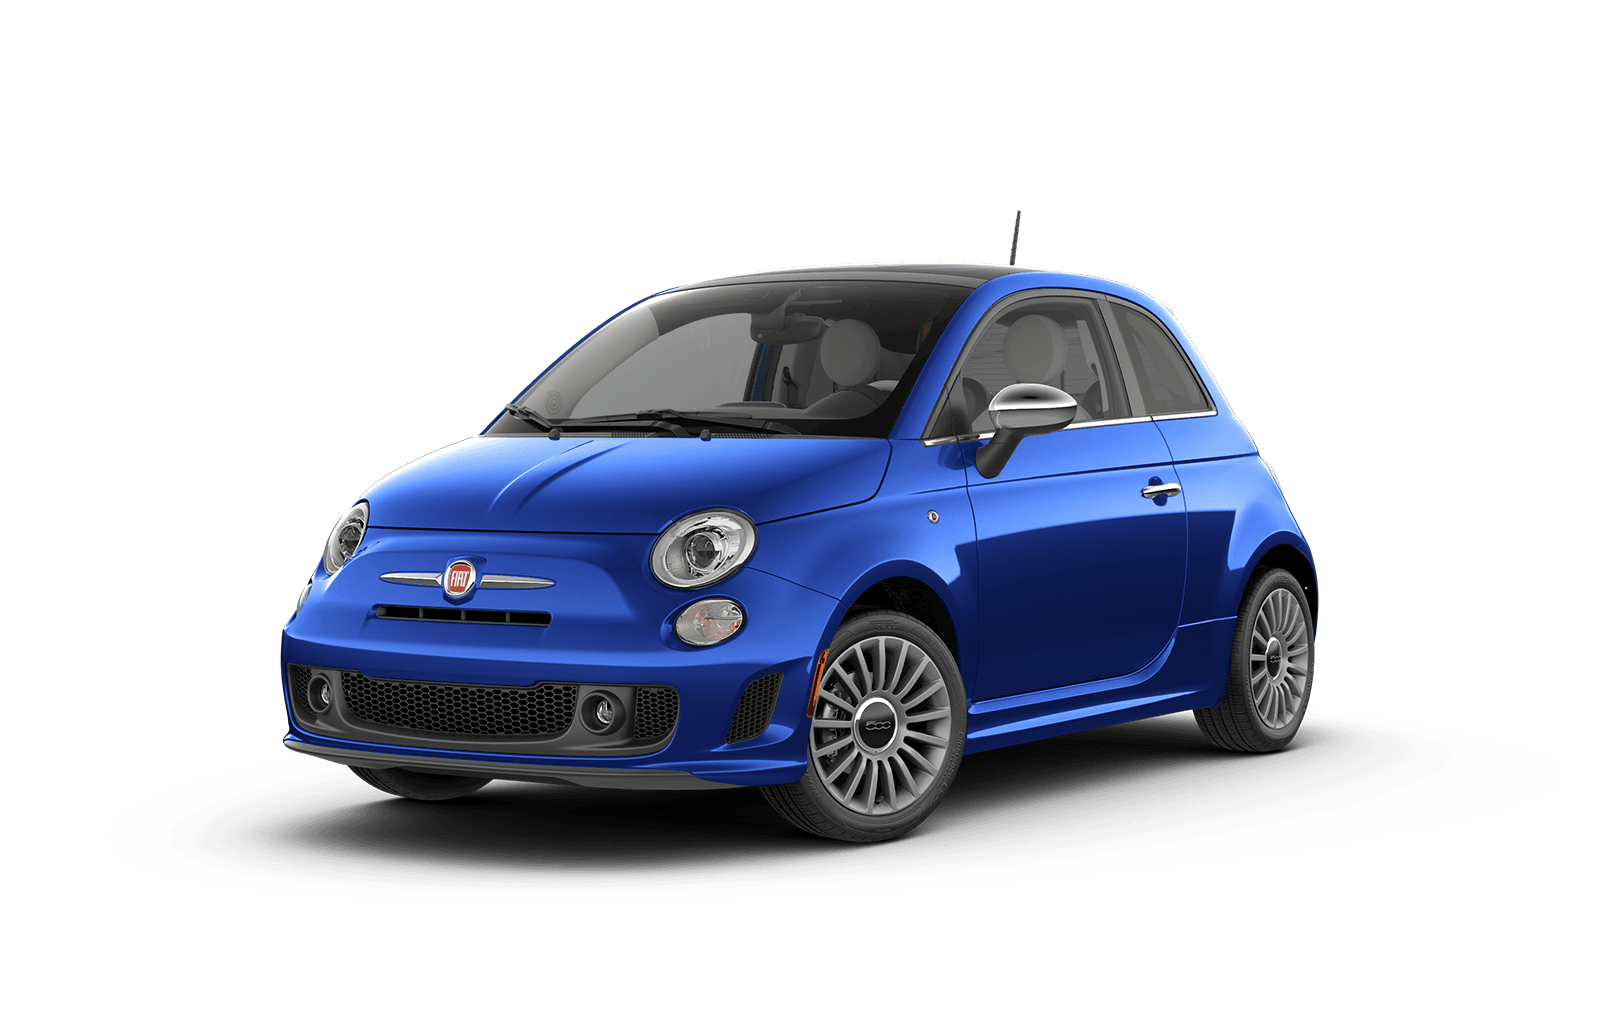 2019 FIAT 500 Full View in Bright Blue with Wheels